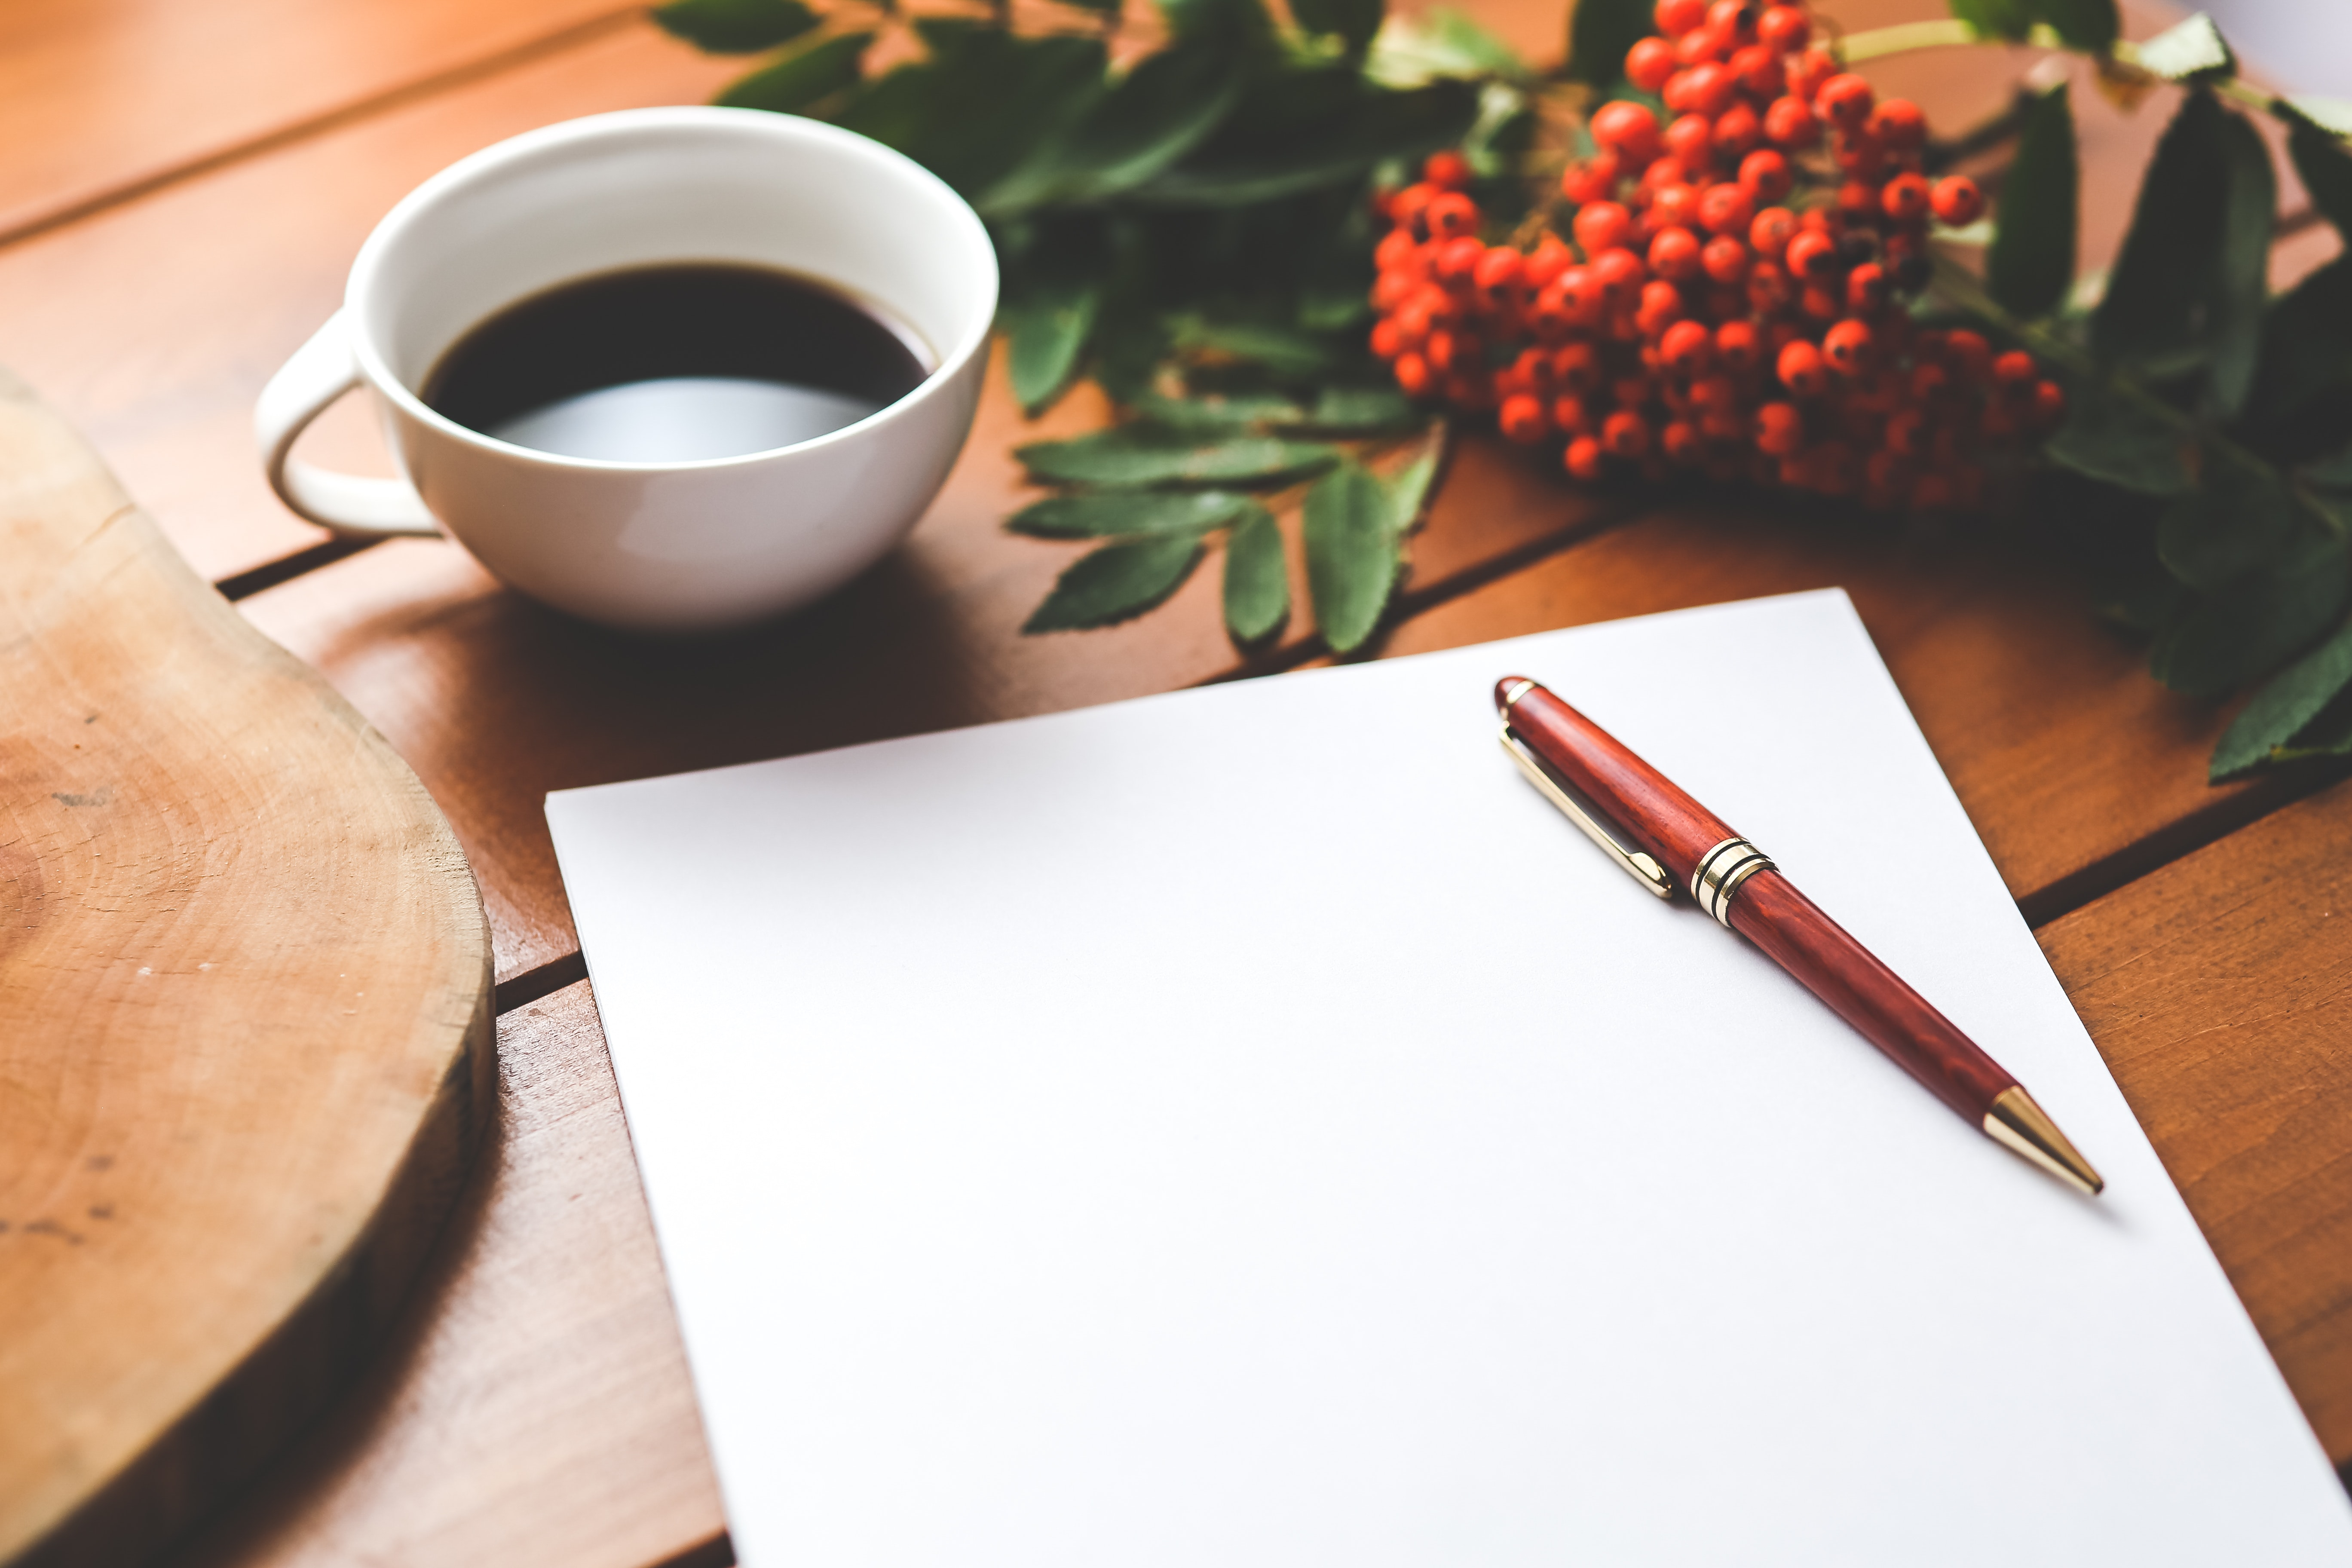 Blank paper with pen and coffee cup on wood table, Blank, Brainstorming, Business, Coffee, HQ Photo